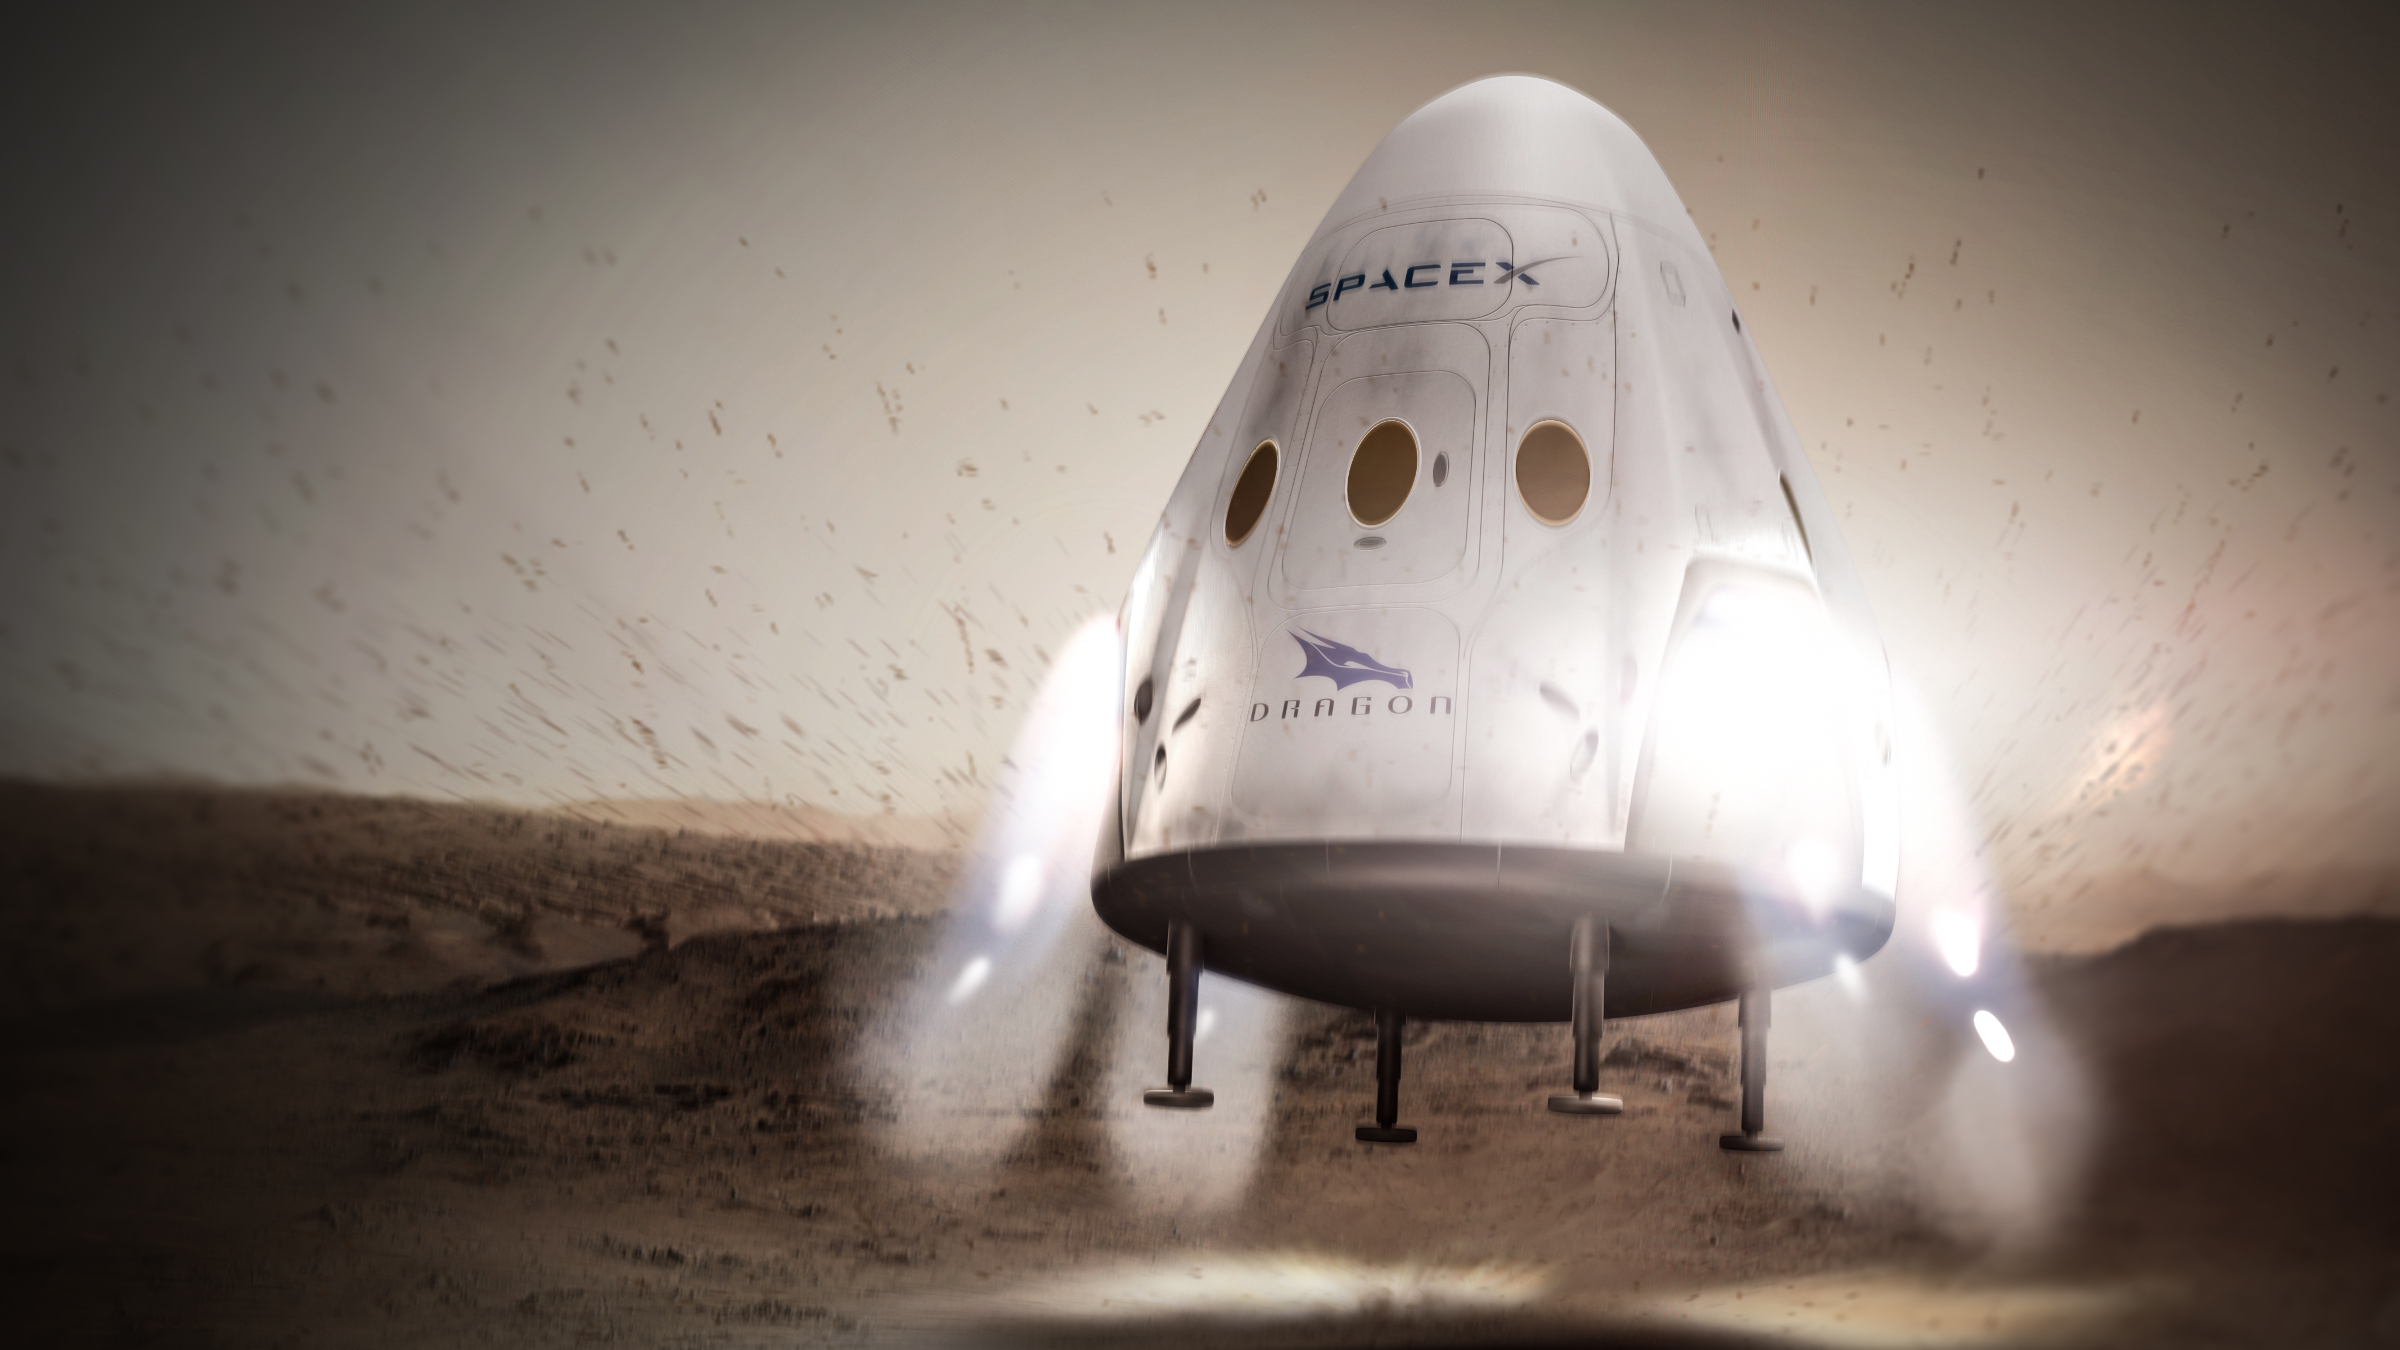 An artist's conception of a Dragon spacecraft landing on Mars.